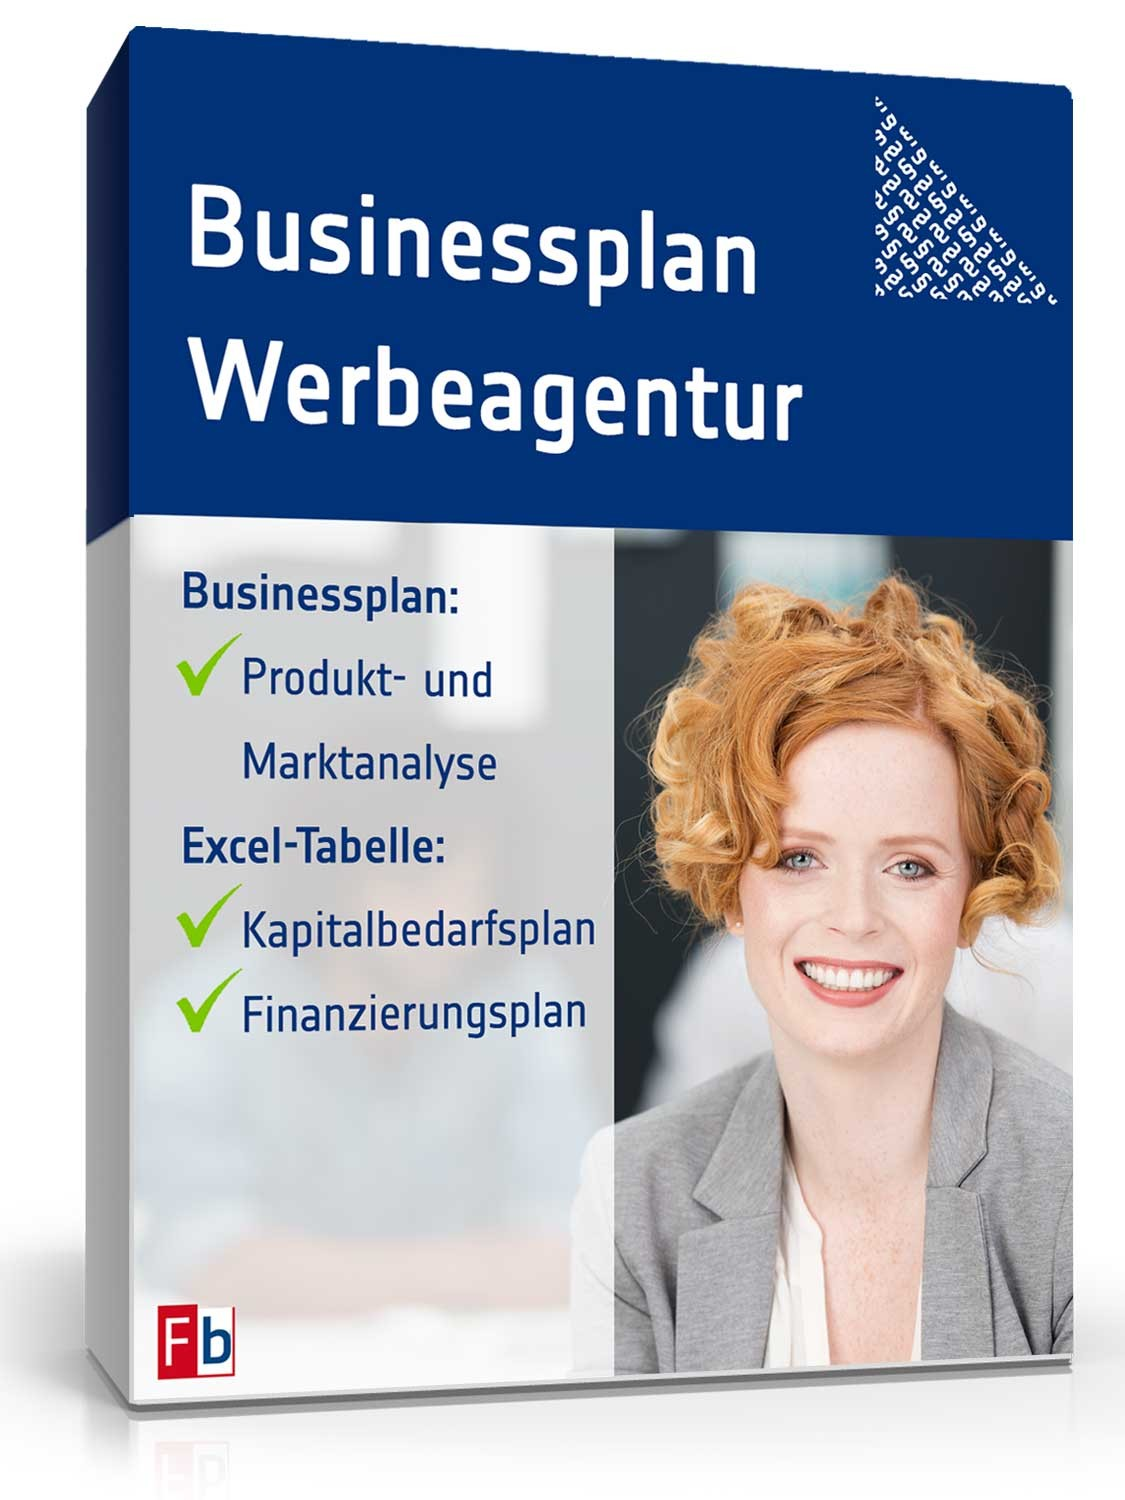 Businessplan werbeagentur muster zum download for Www homedesigns com